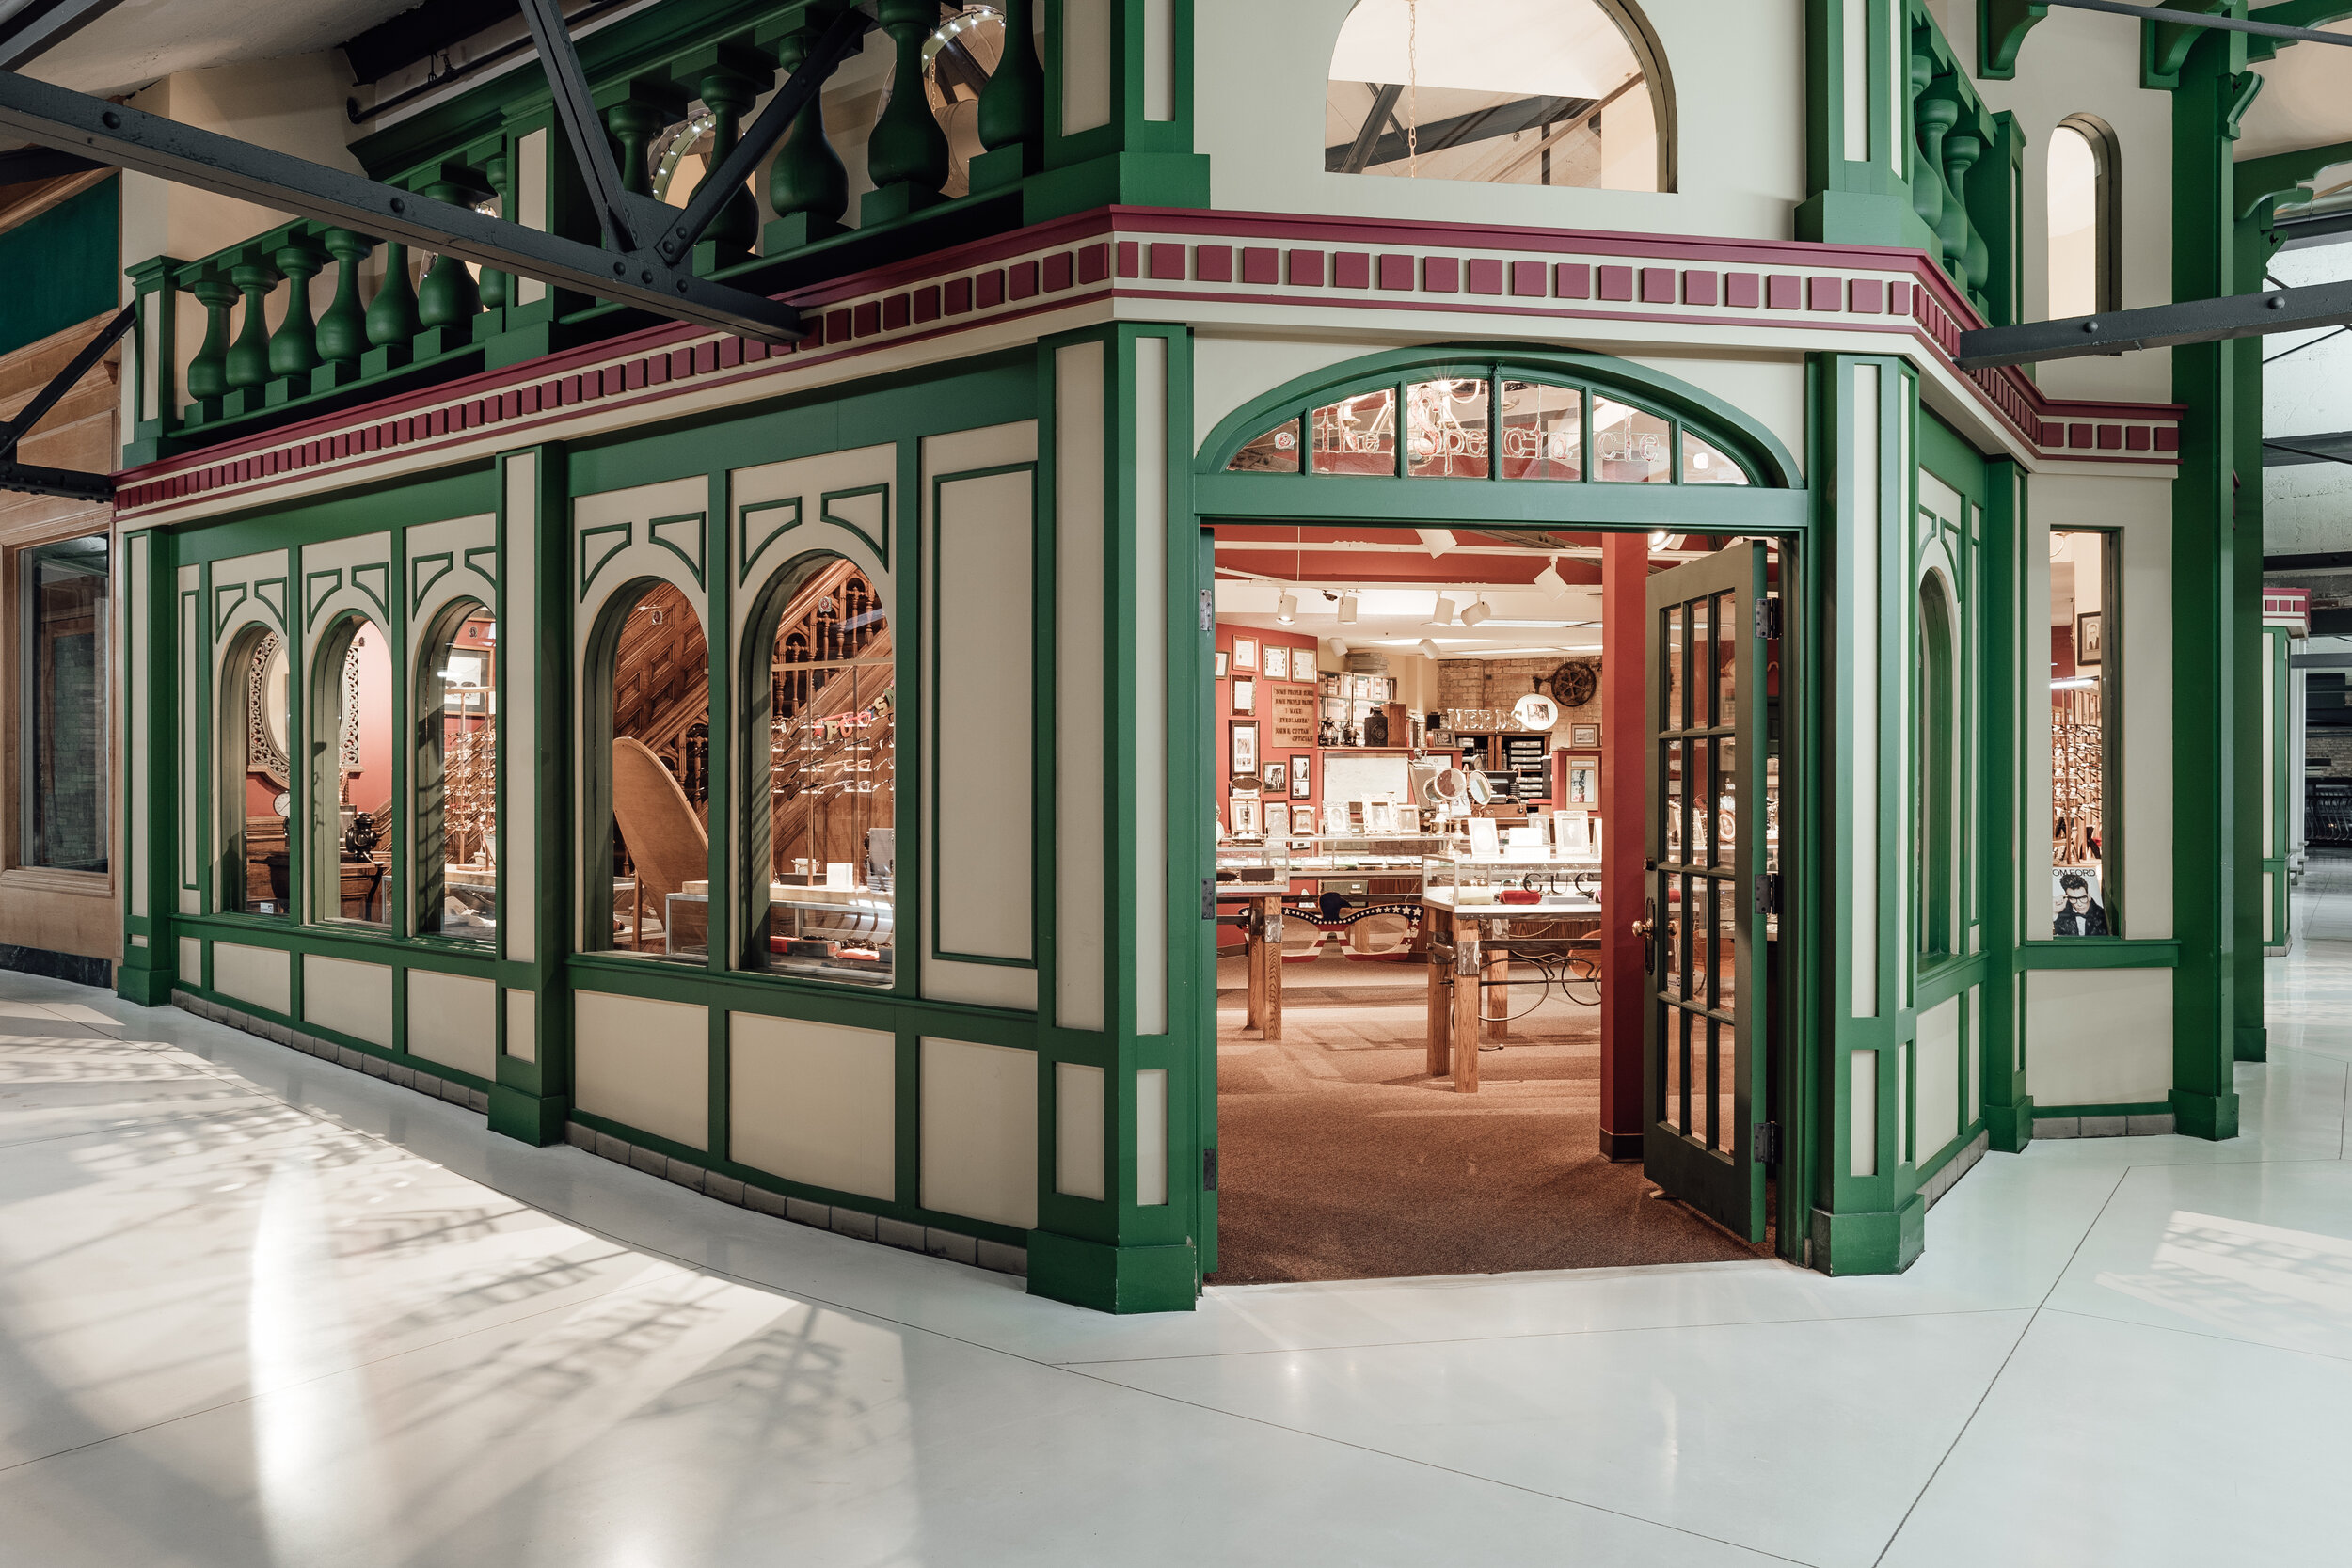 Trolley_Square_Store_Fronts-25.jpg